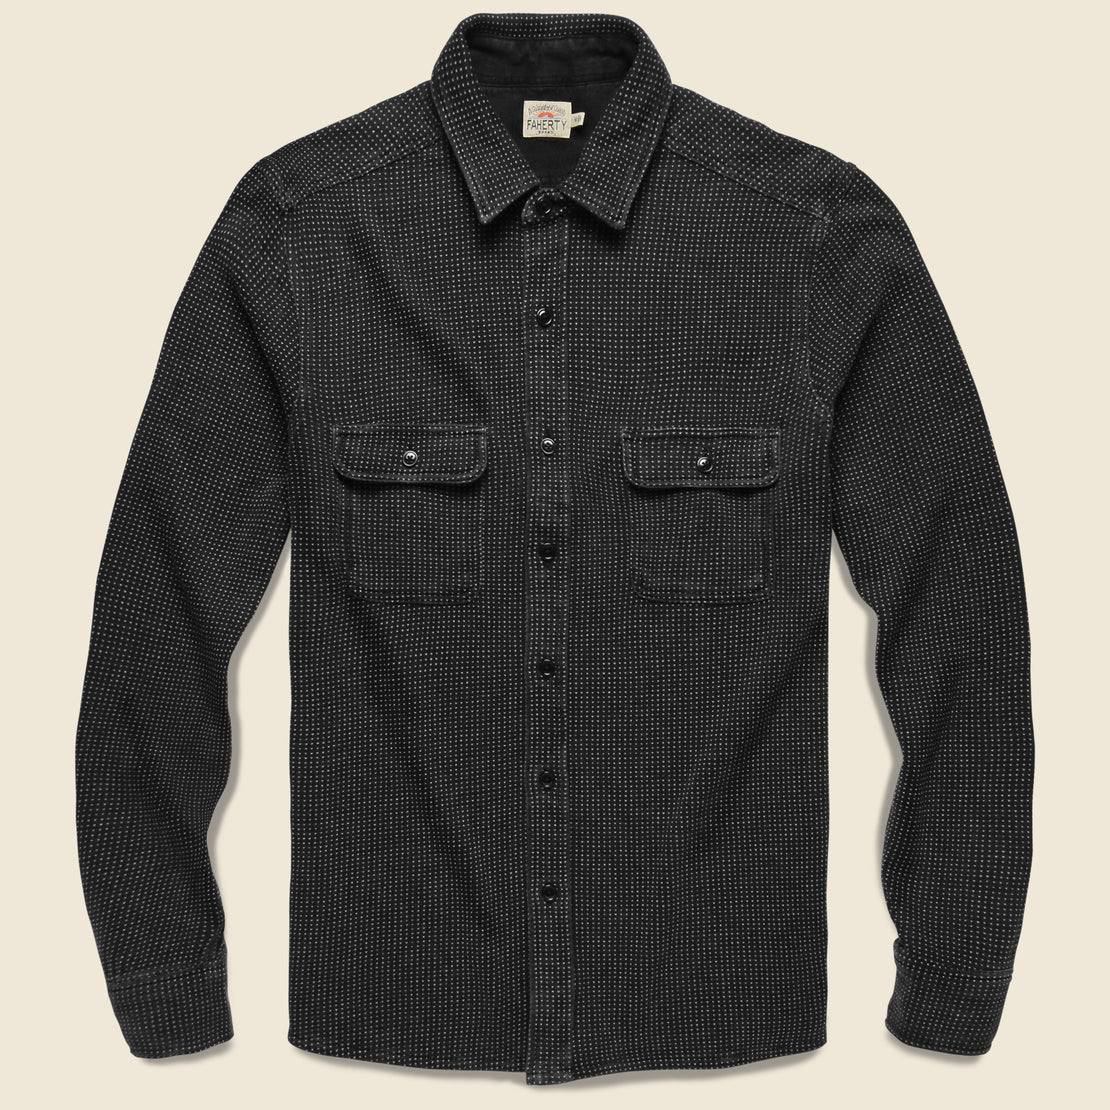 Faherty 18 Year Wash Knit Dobby Workshirt - Black Indigo